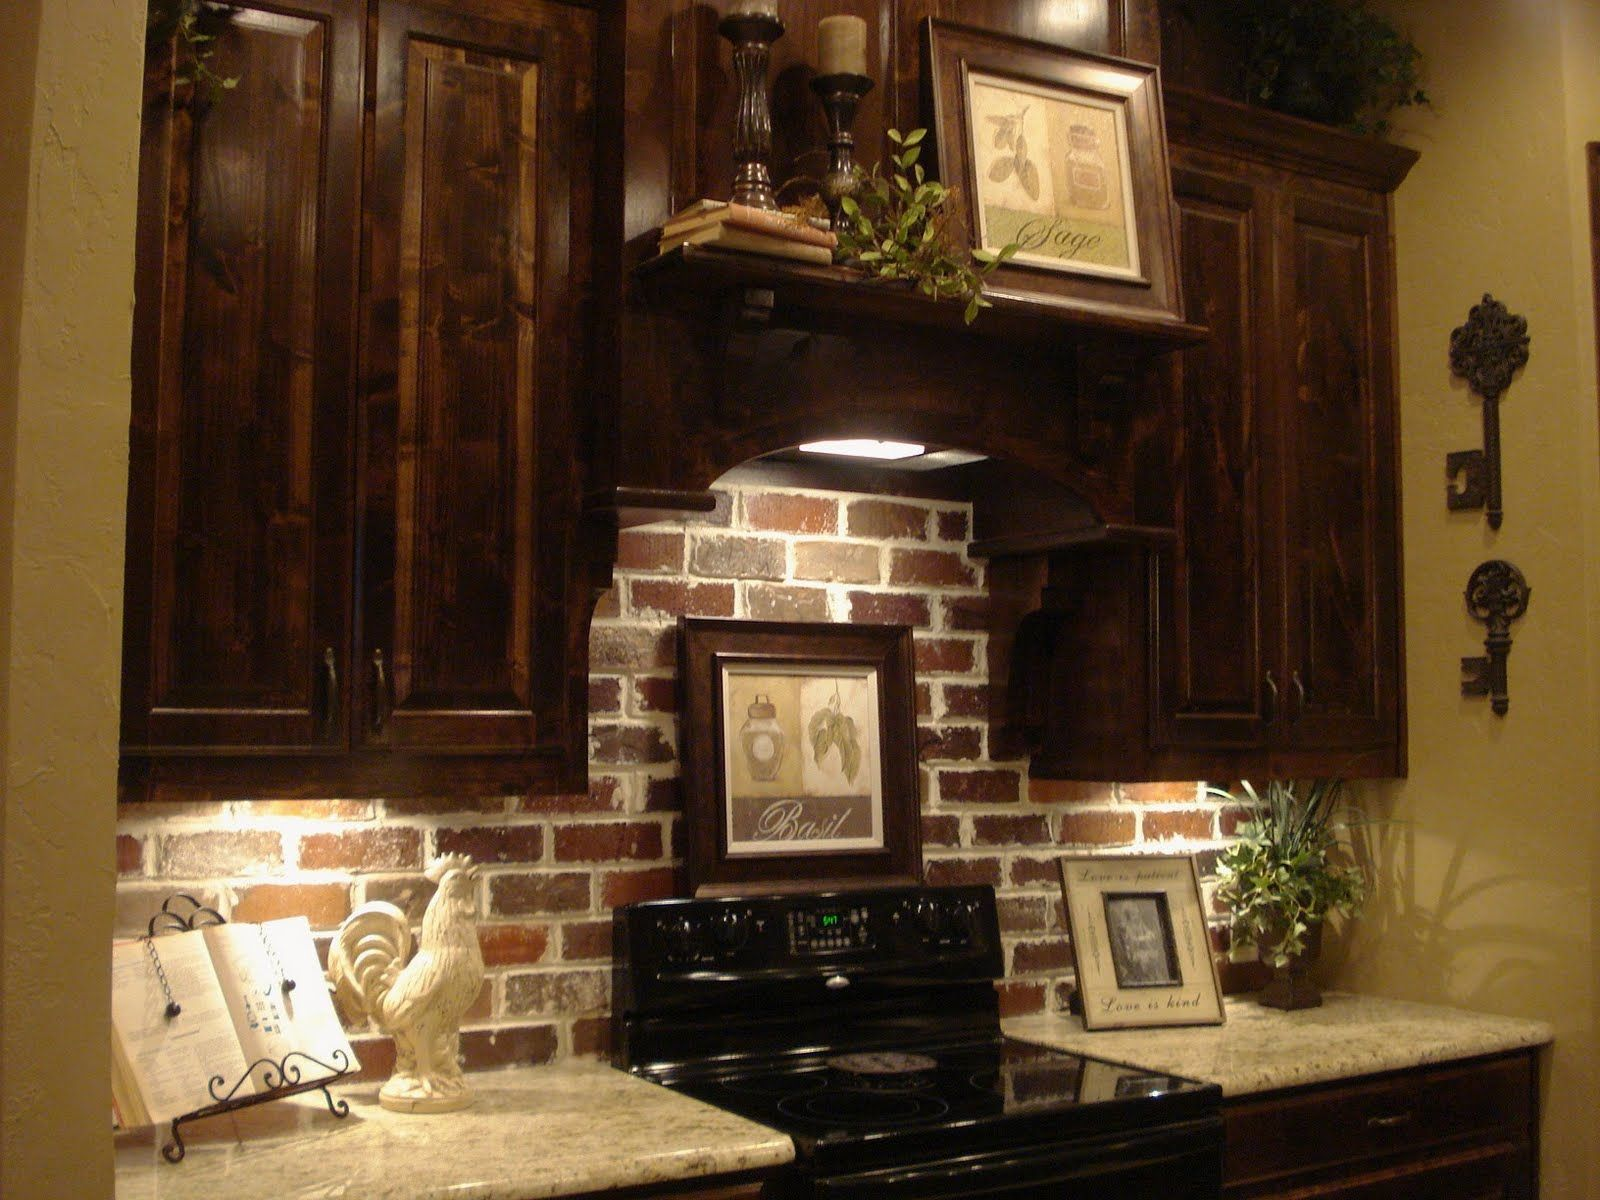 Brick Backsplash Dark Cabinets Yes Future Kitchen The Chunn House Pinterest Bricks